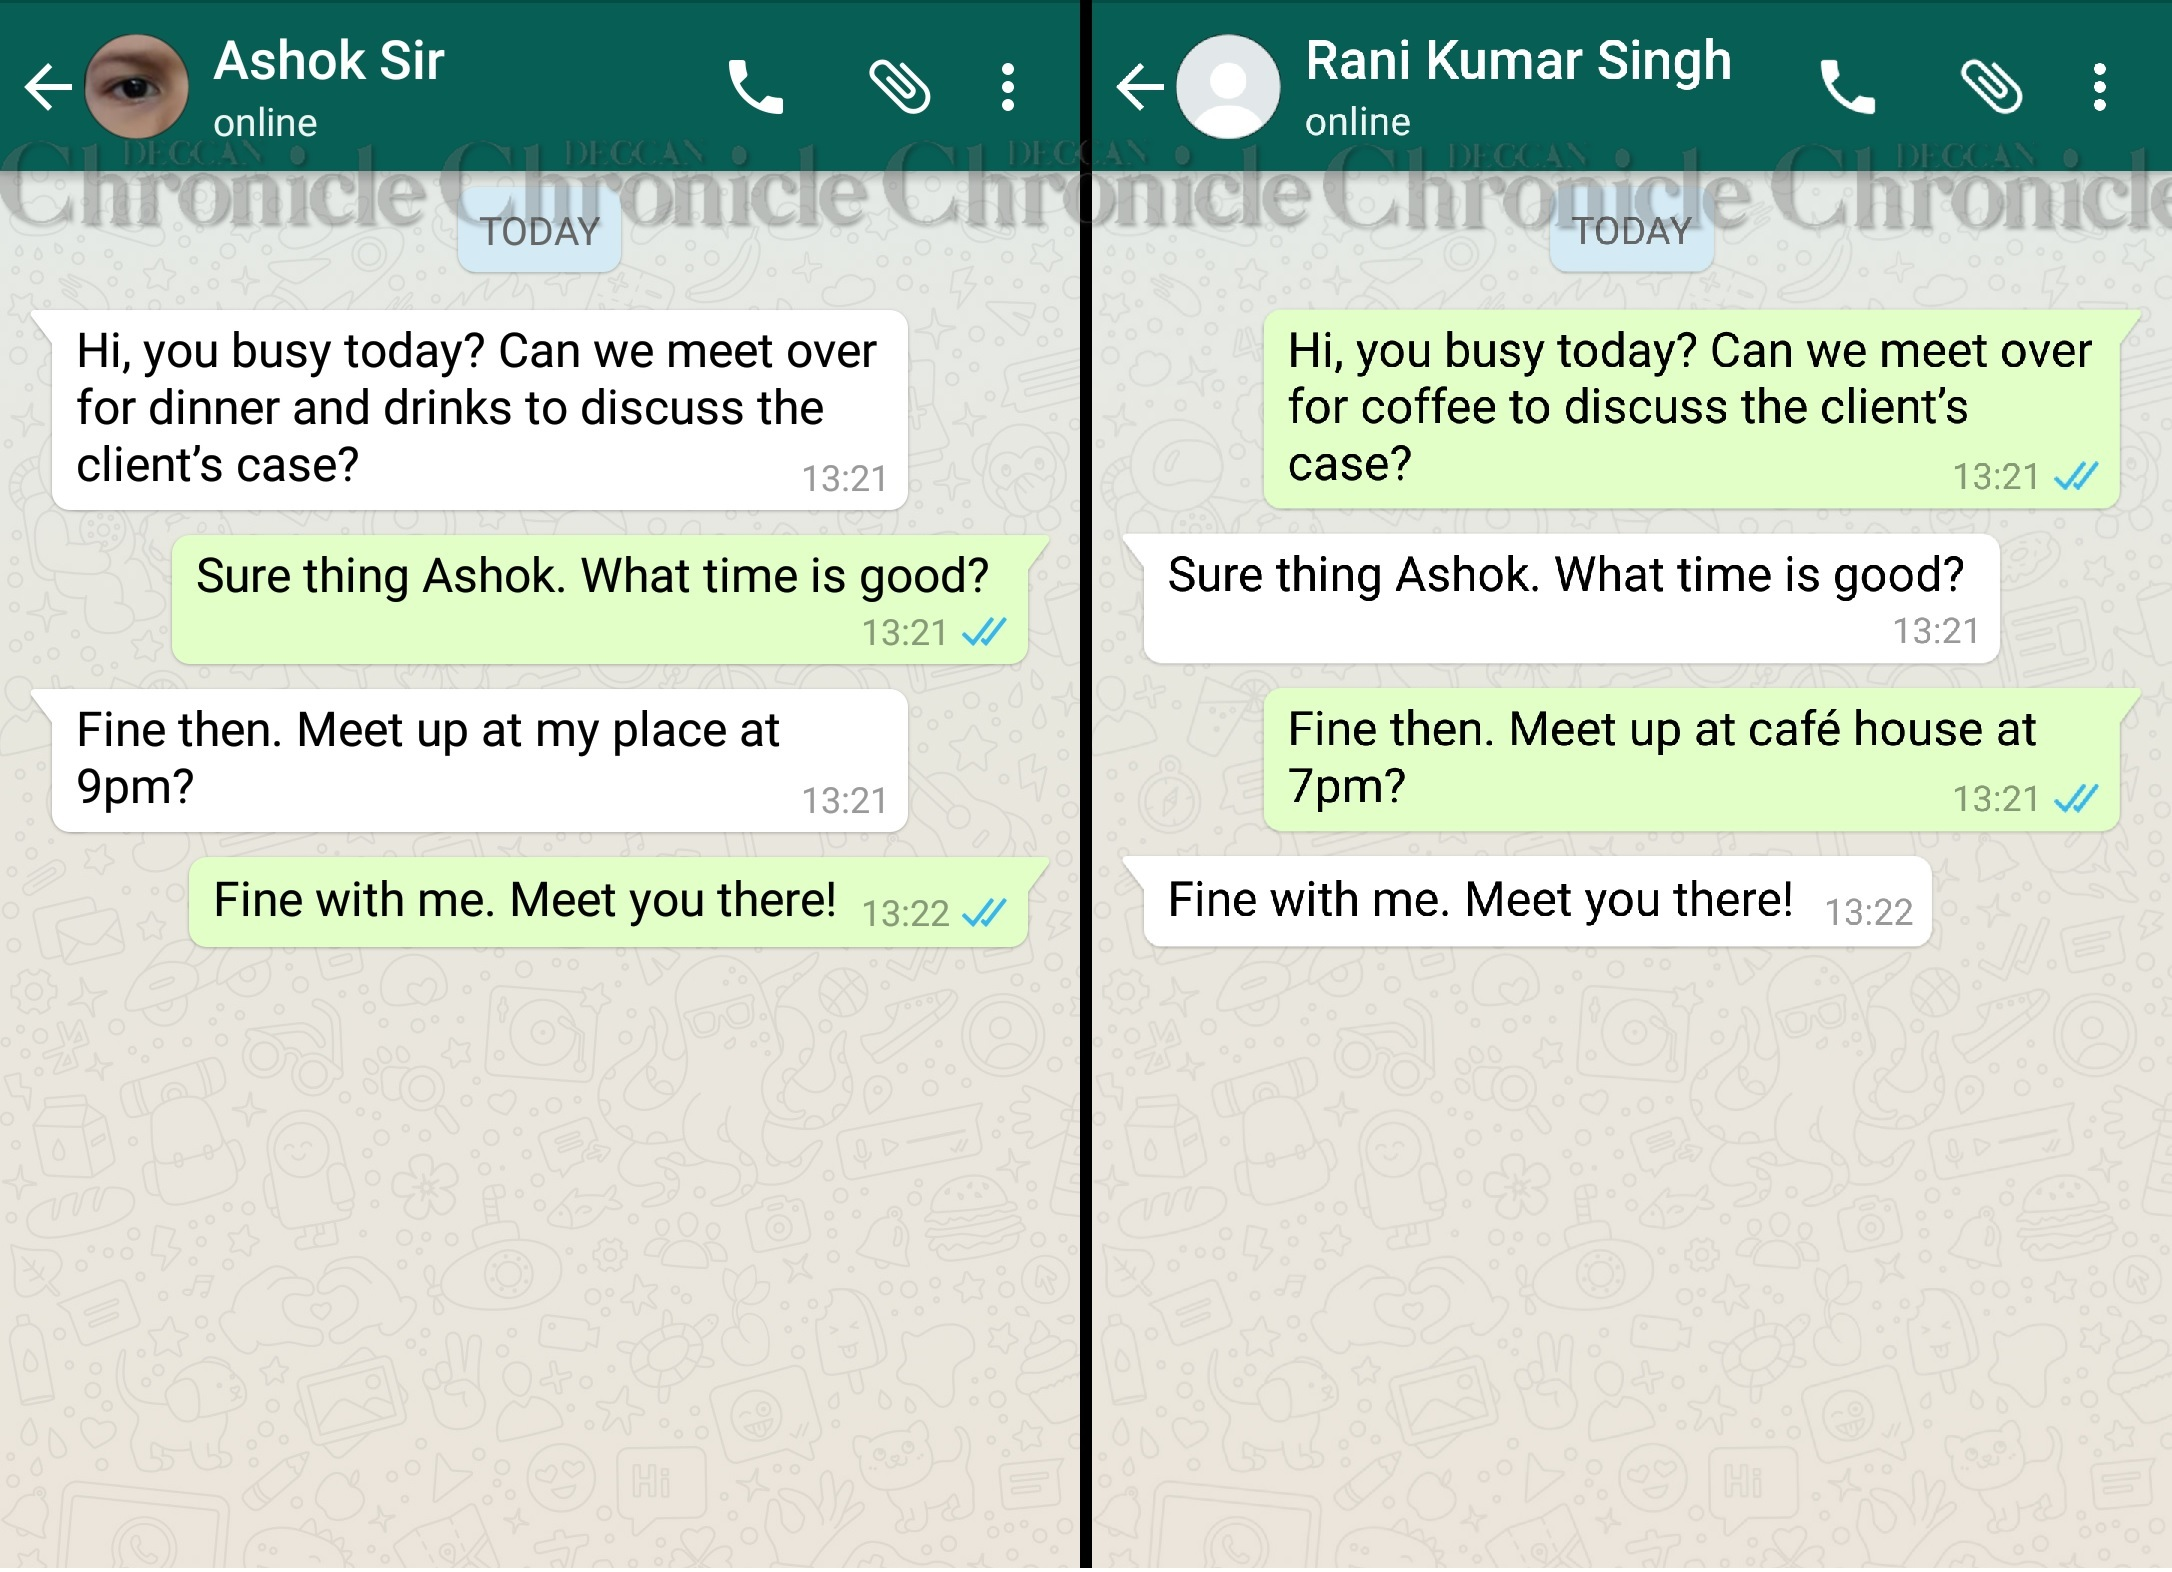 It's meidterannean women. They are quite different.